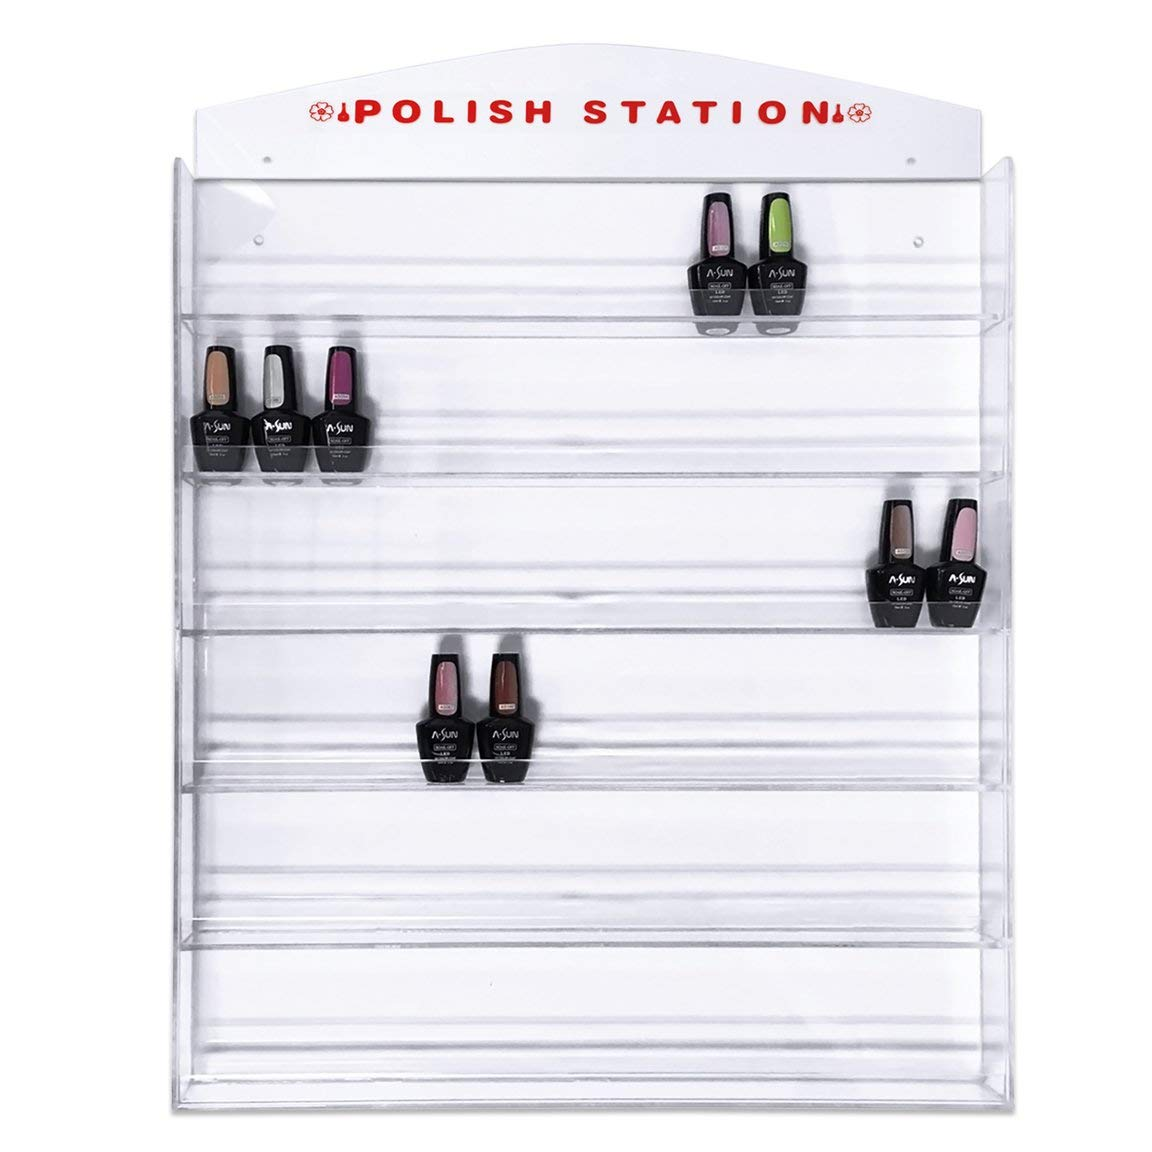 Acrylic 6 Rows Transparent Clear Nail Polish Wall Display Rack – Holds up to 90 to 120 Bottles